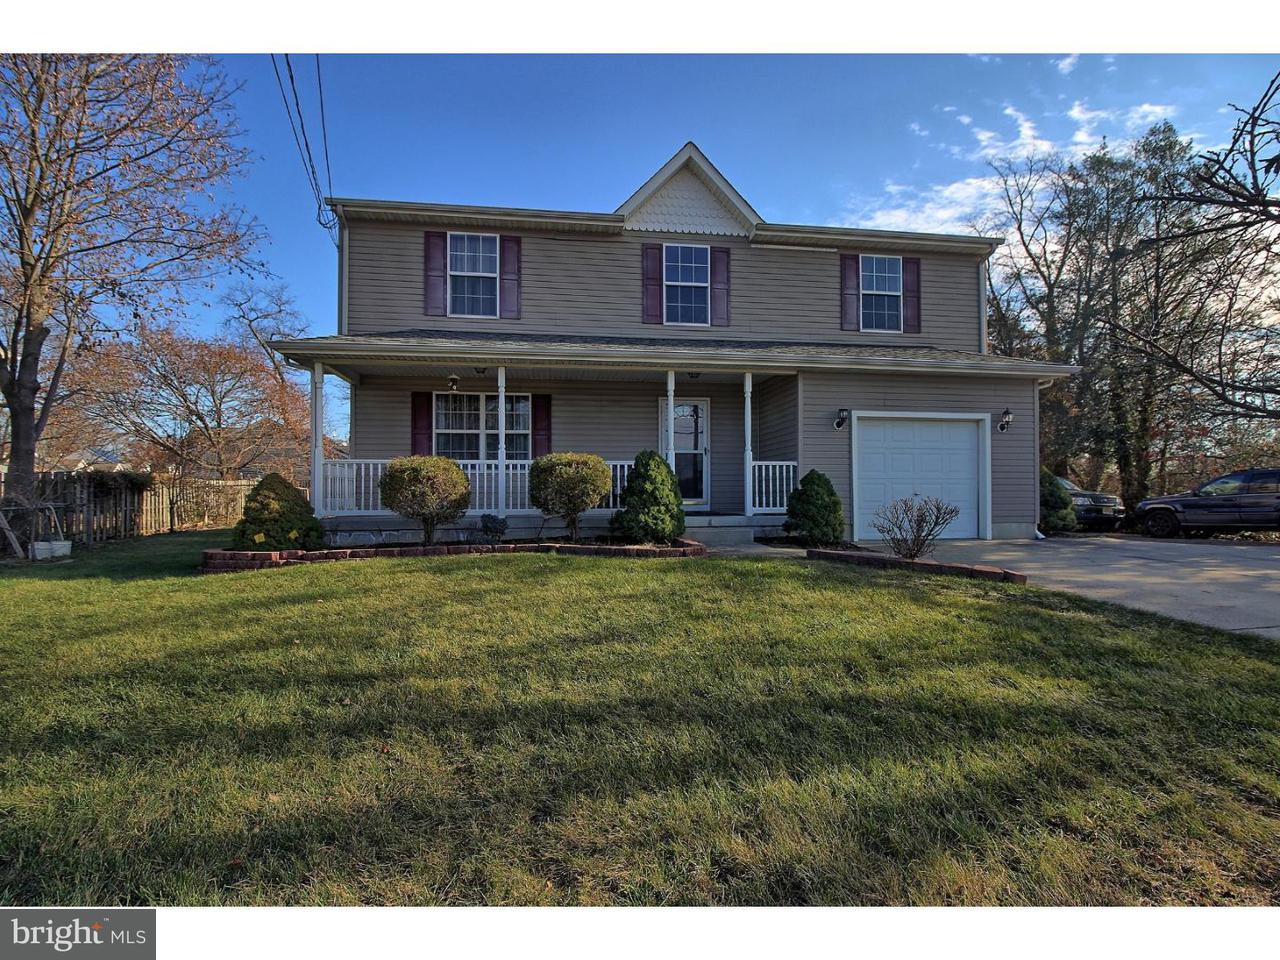 Single Family Home for Sale at 58 HARKER Avenue Berlin Boro, New Jersey 08009 United States